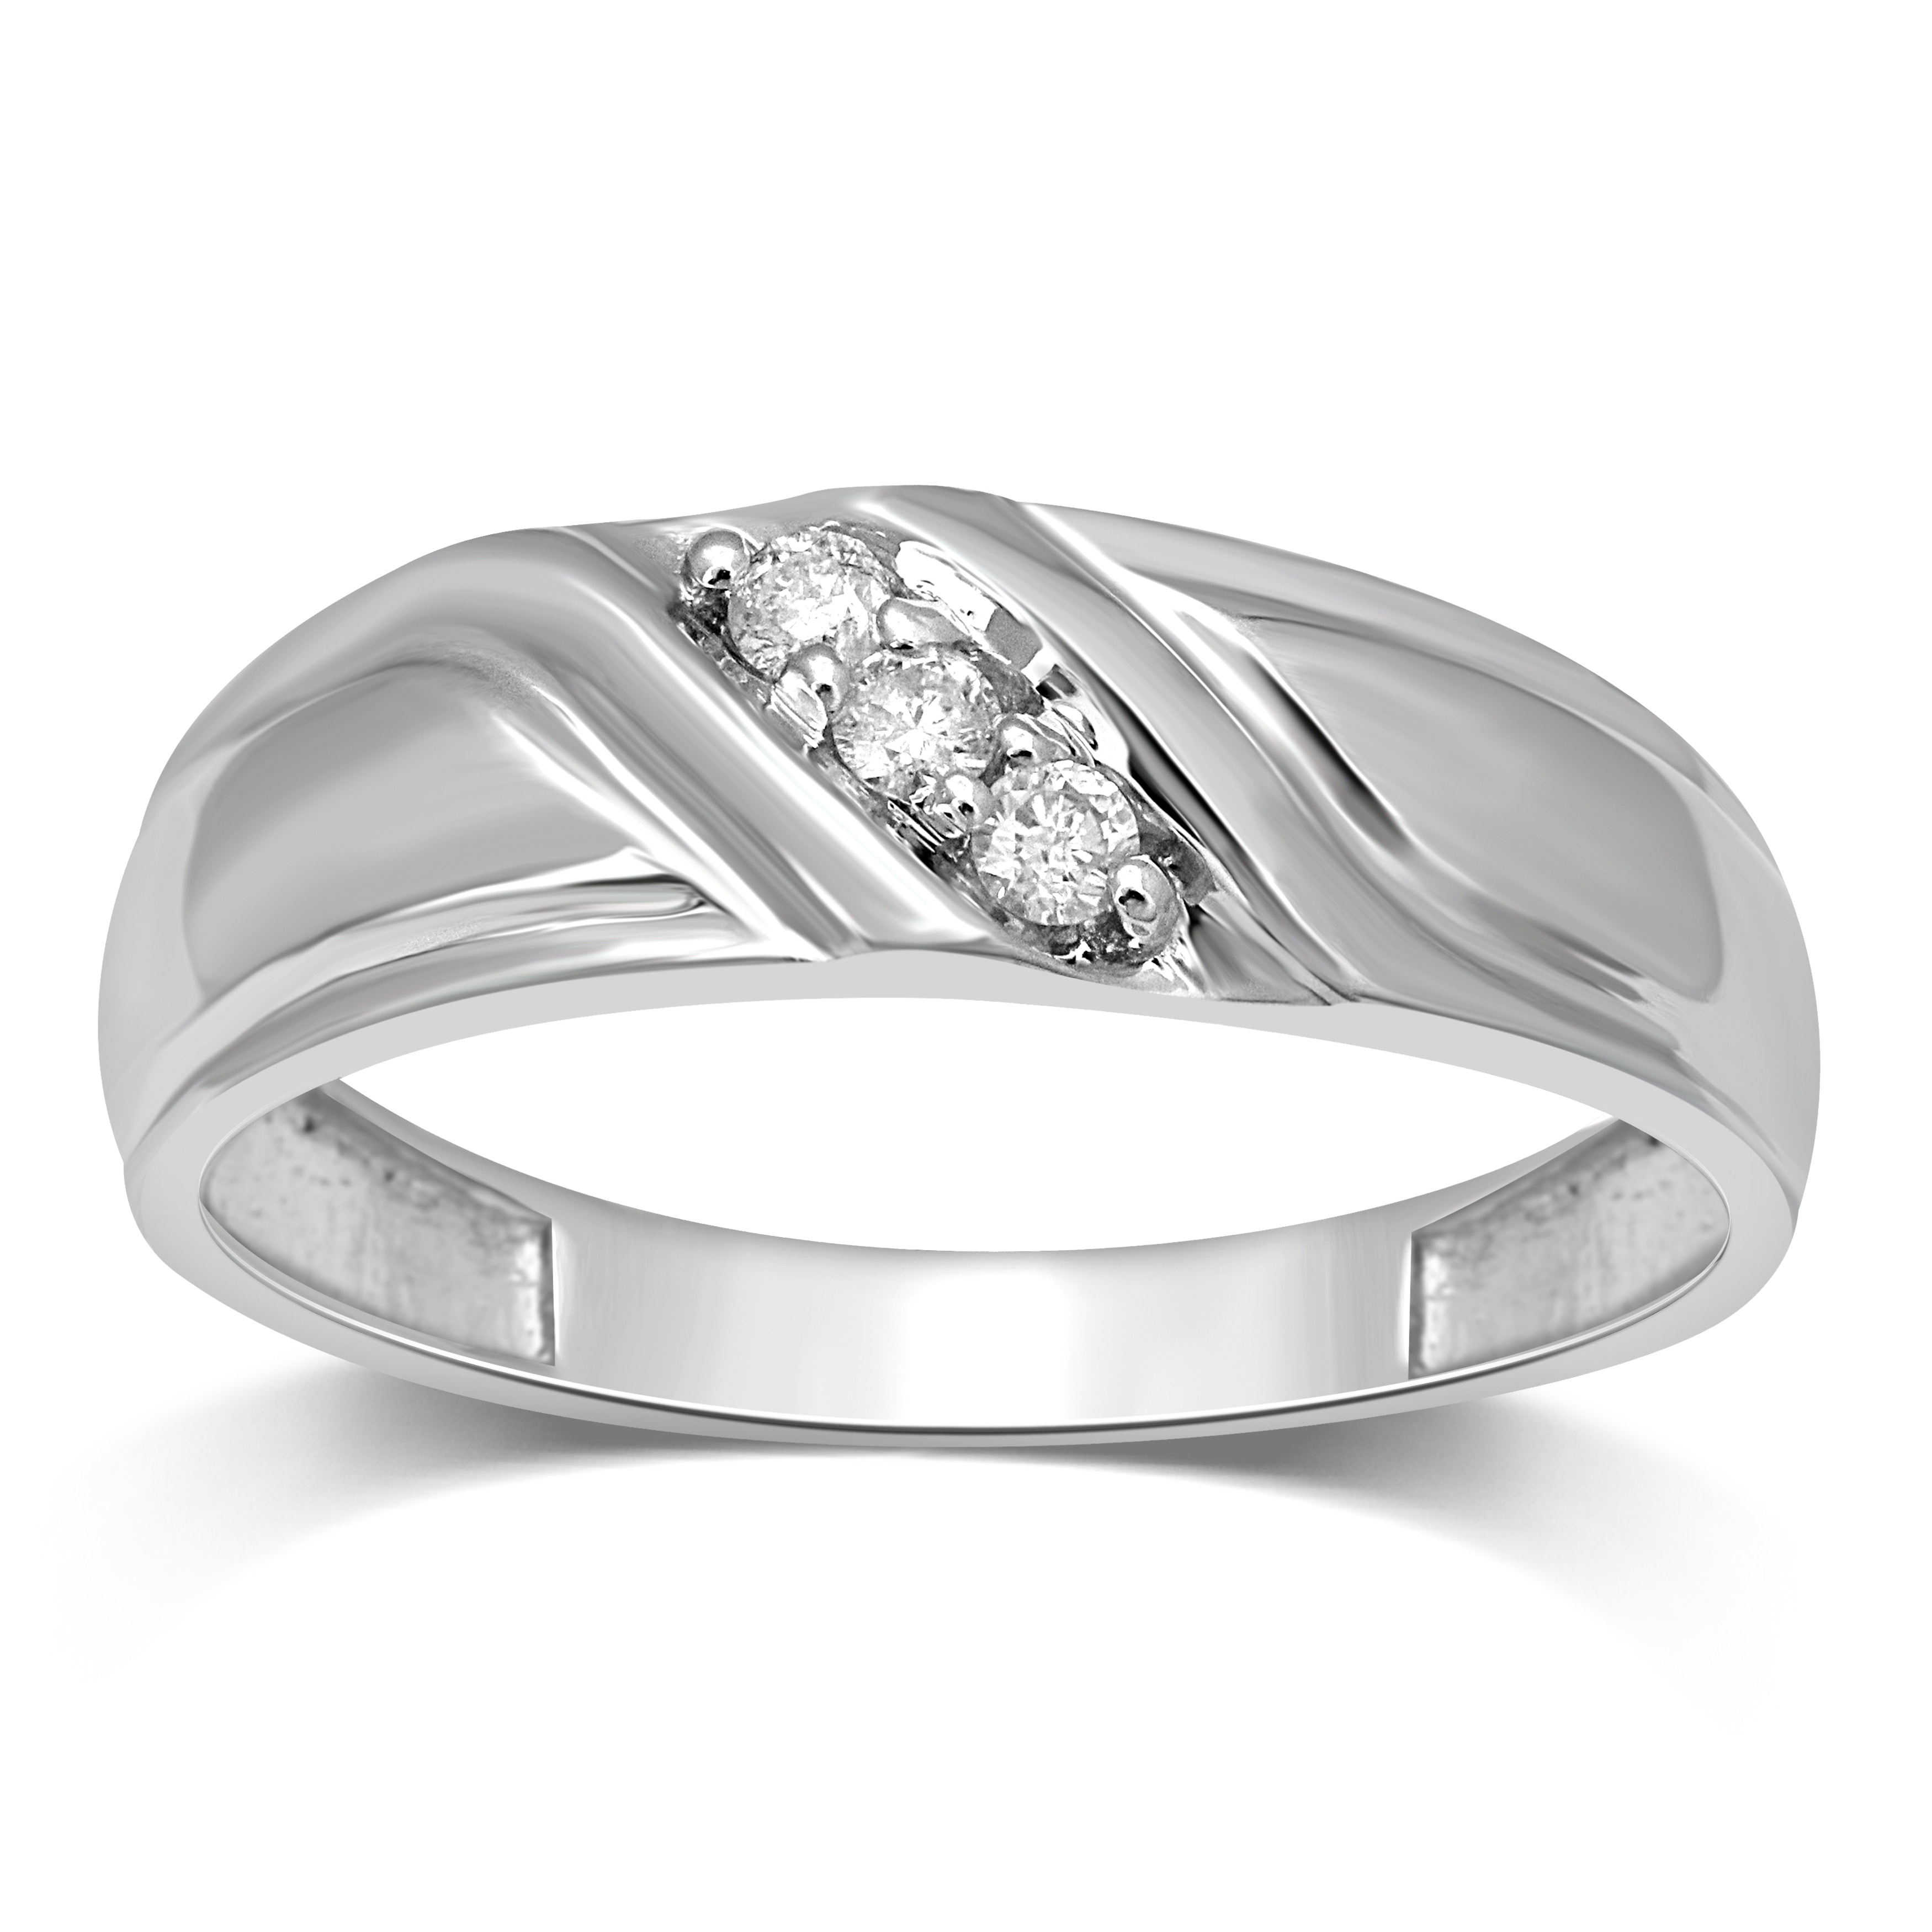 Buy Men S Wedding Bands Groom Wedding Rings Online At